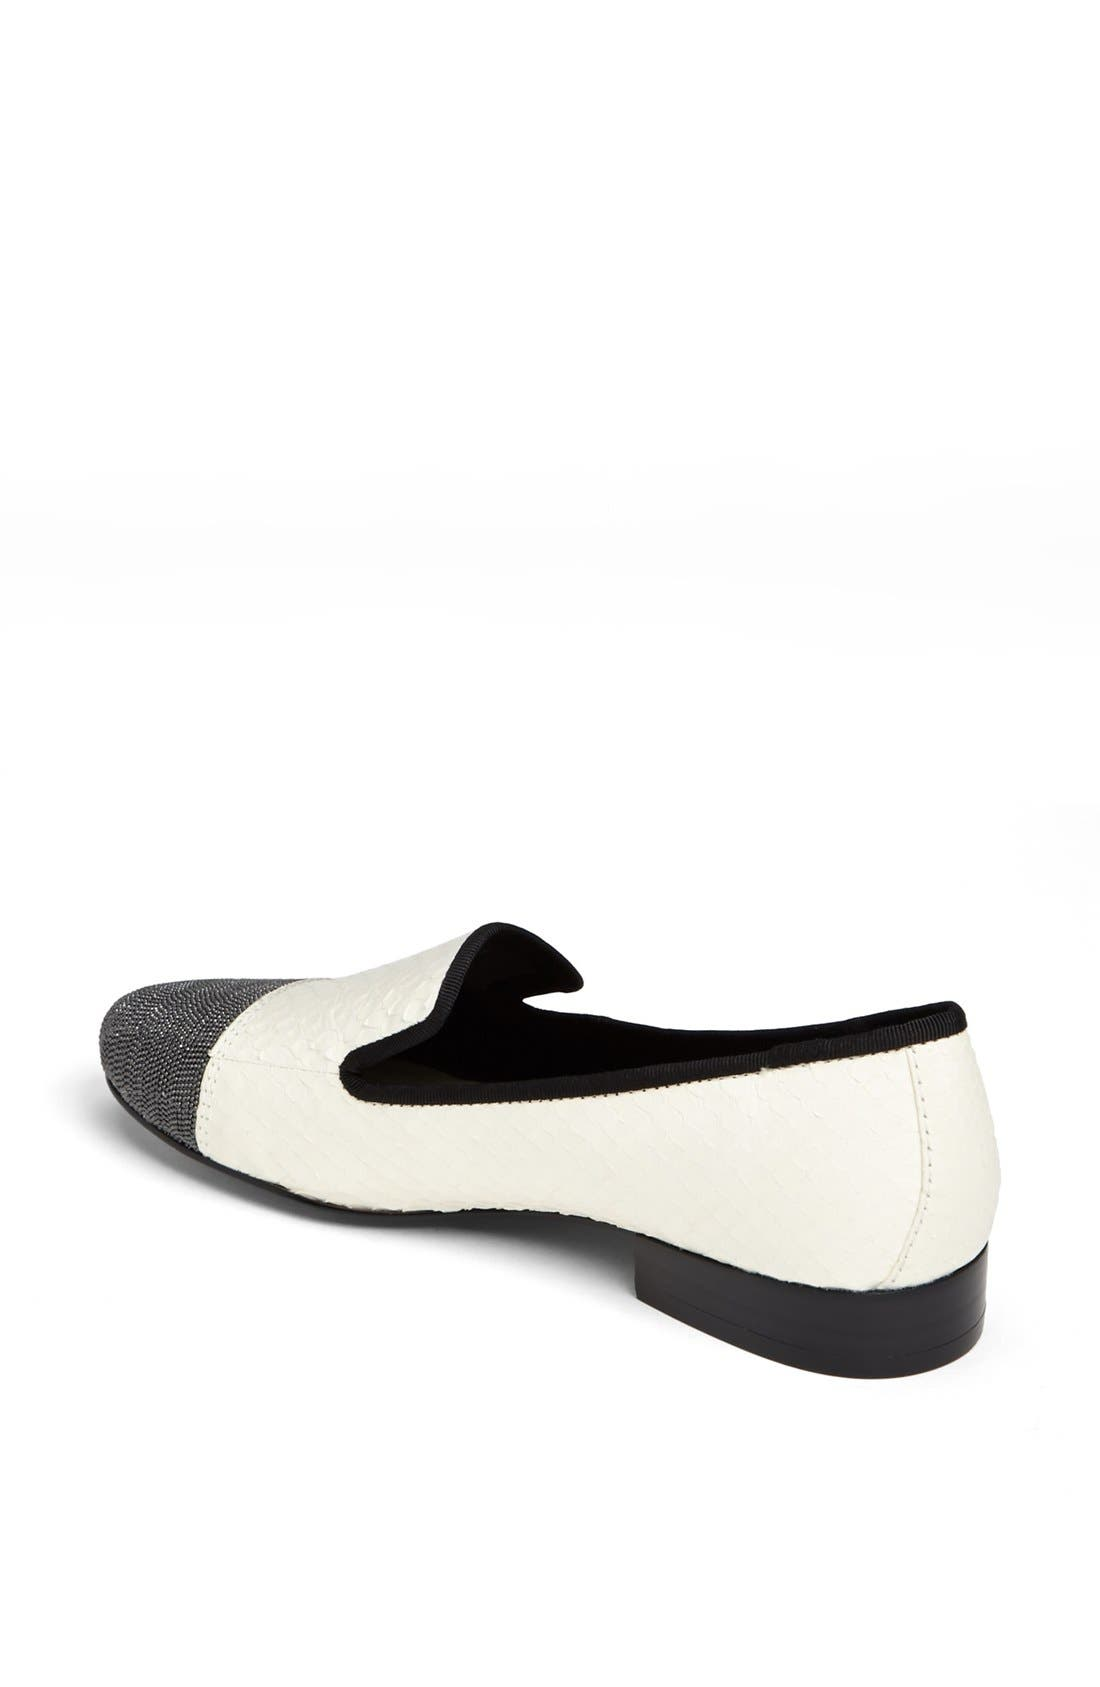 Alternate Image 2  - Dolce Vita Loafer Flat